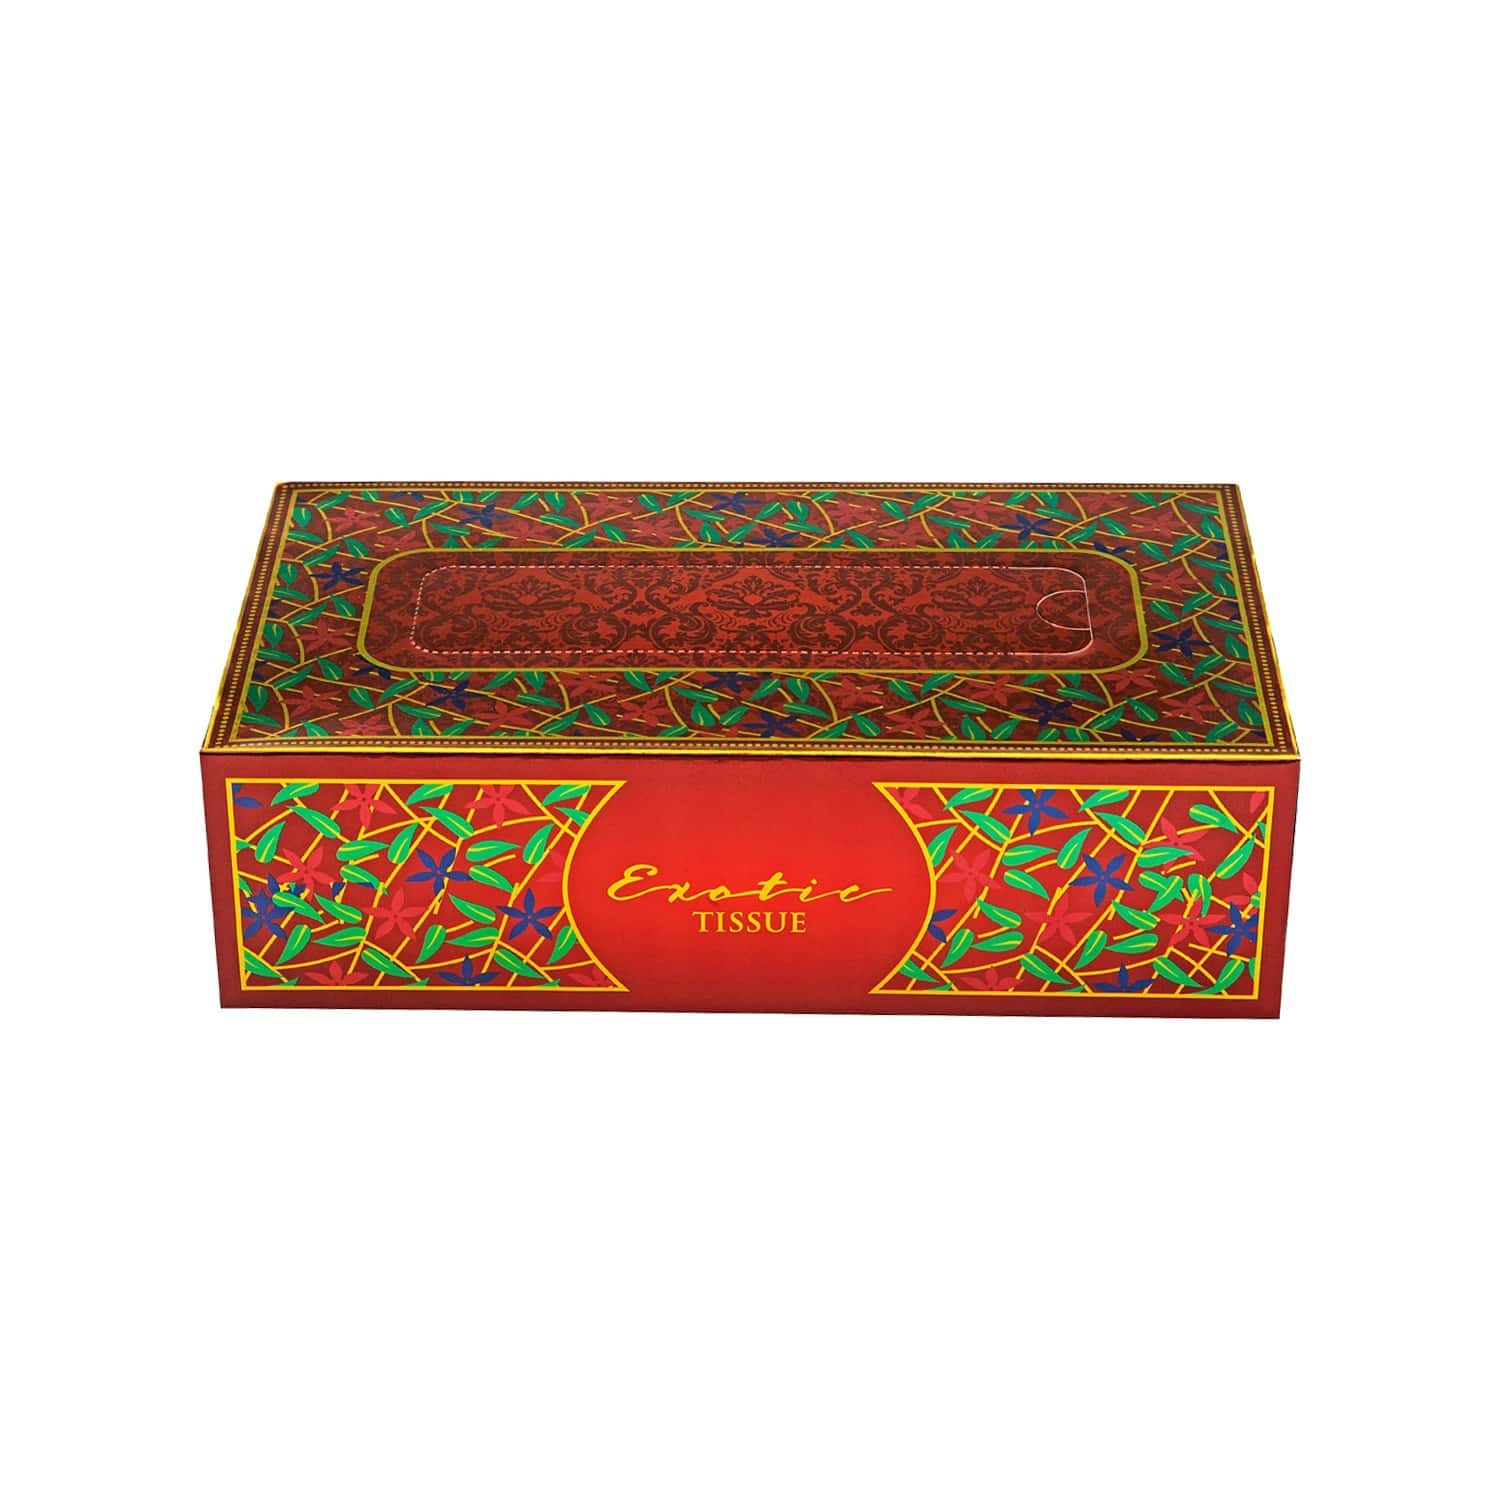 Exotic Bella Tissue Paper Box ( Pack Of 2 ) - 200 Tissues